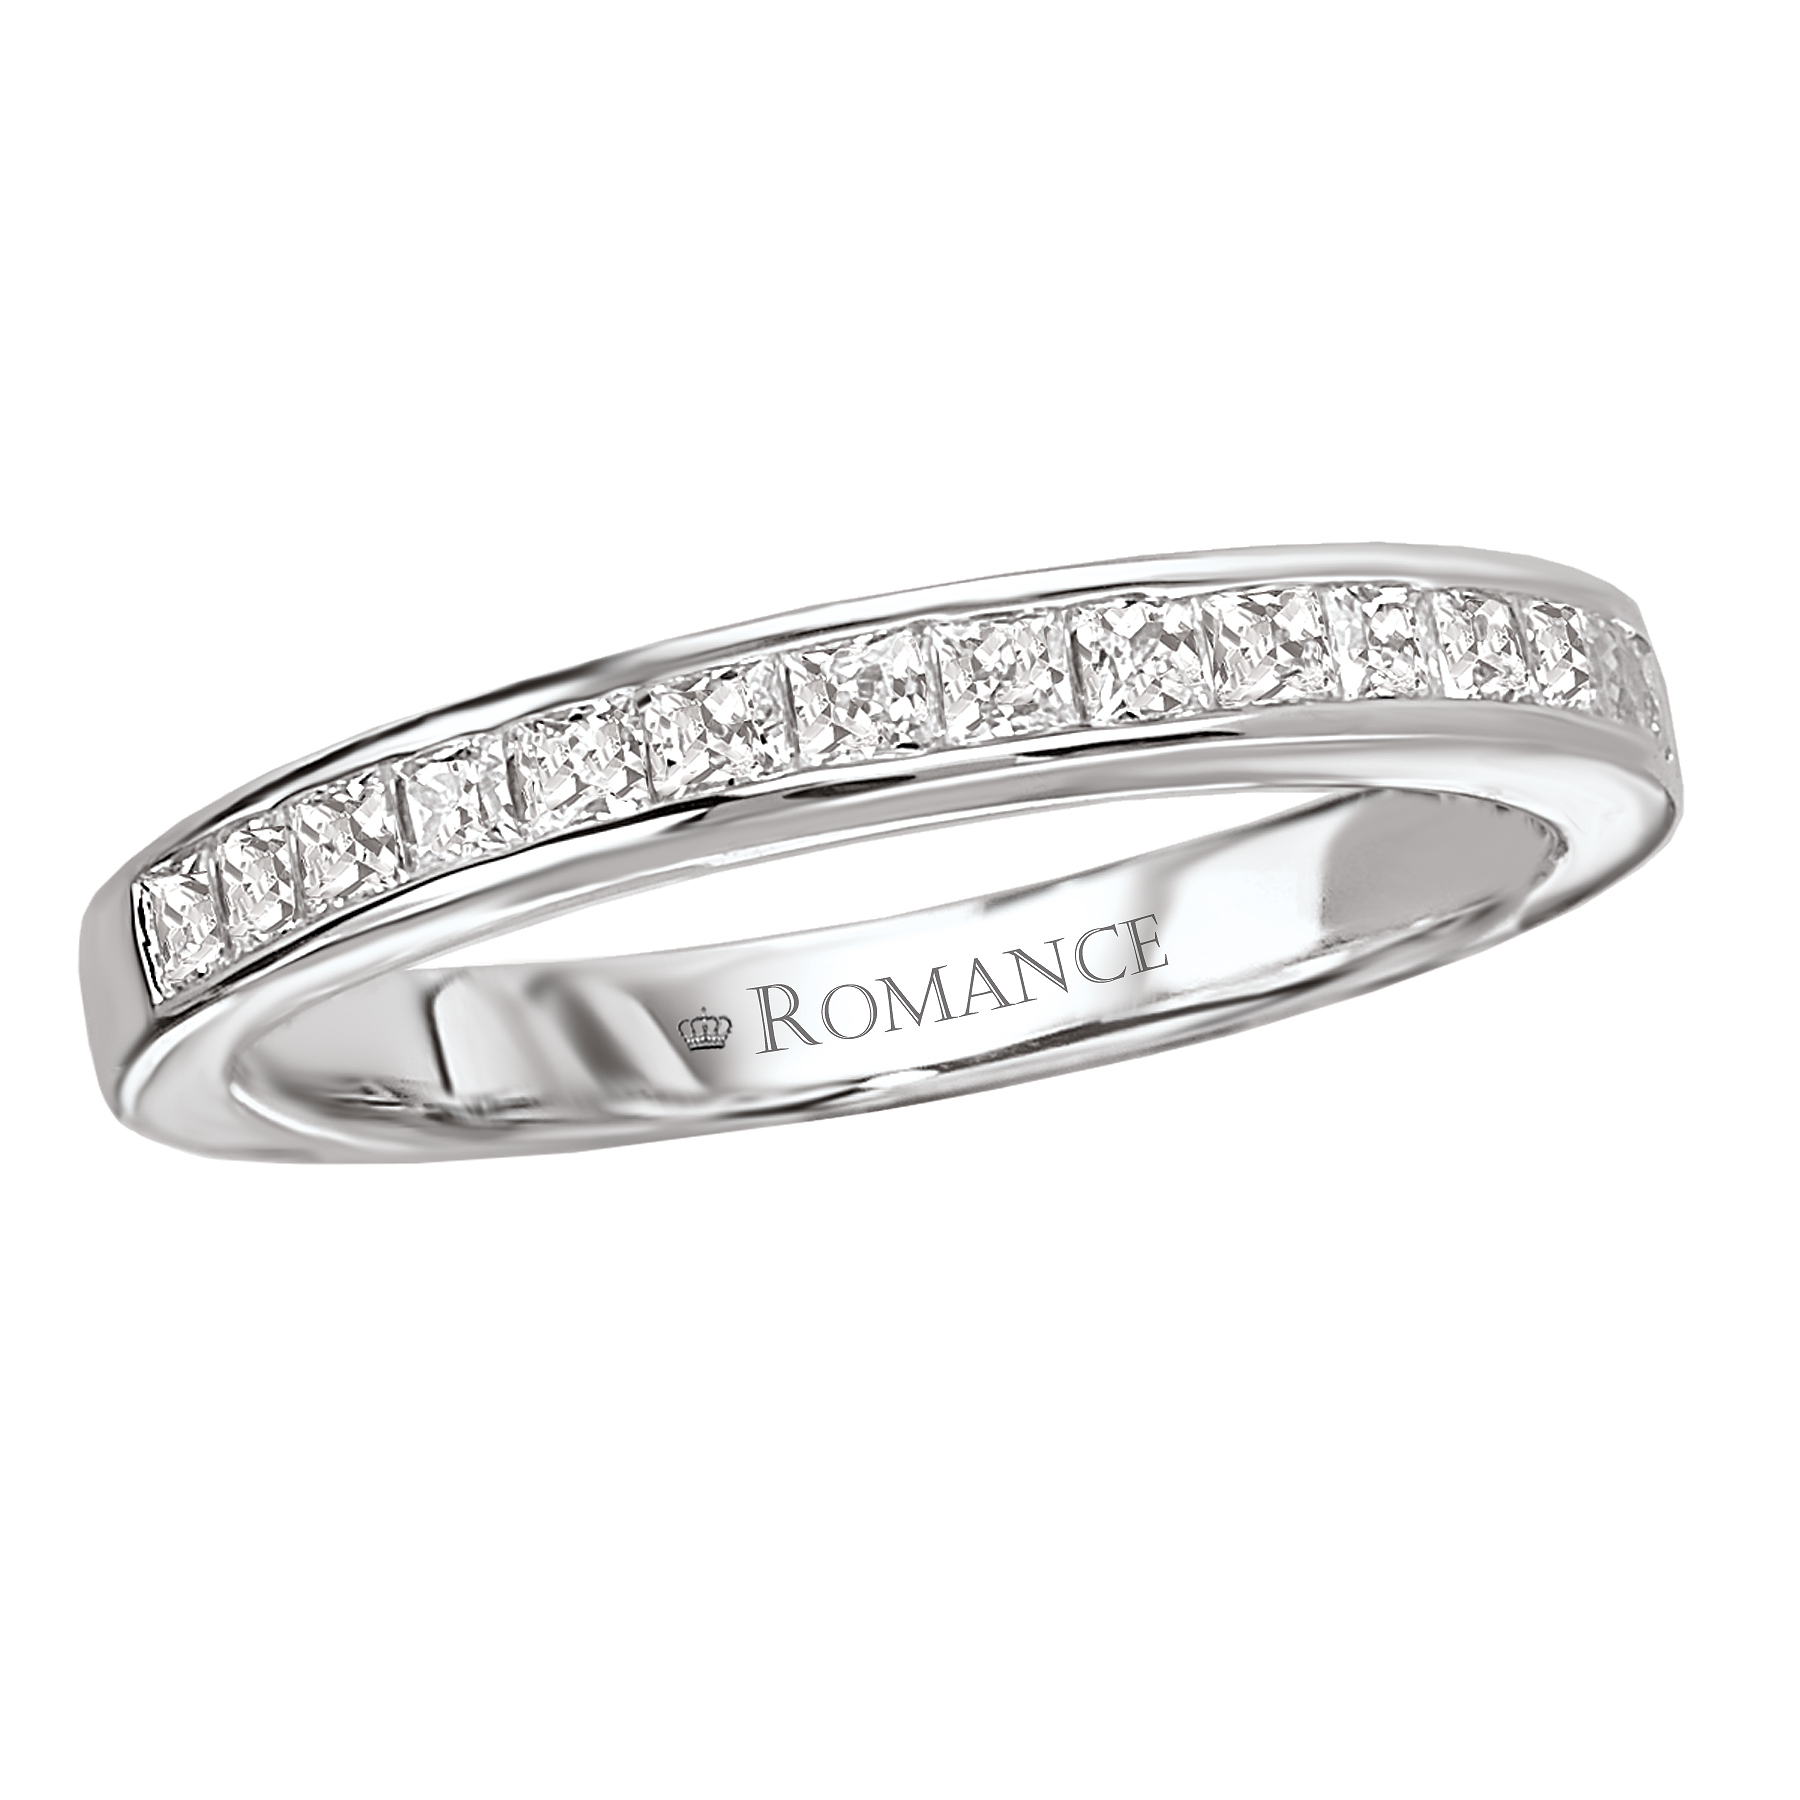 Romance Wedding Bands 117281-W product image